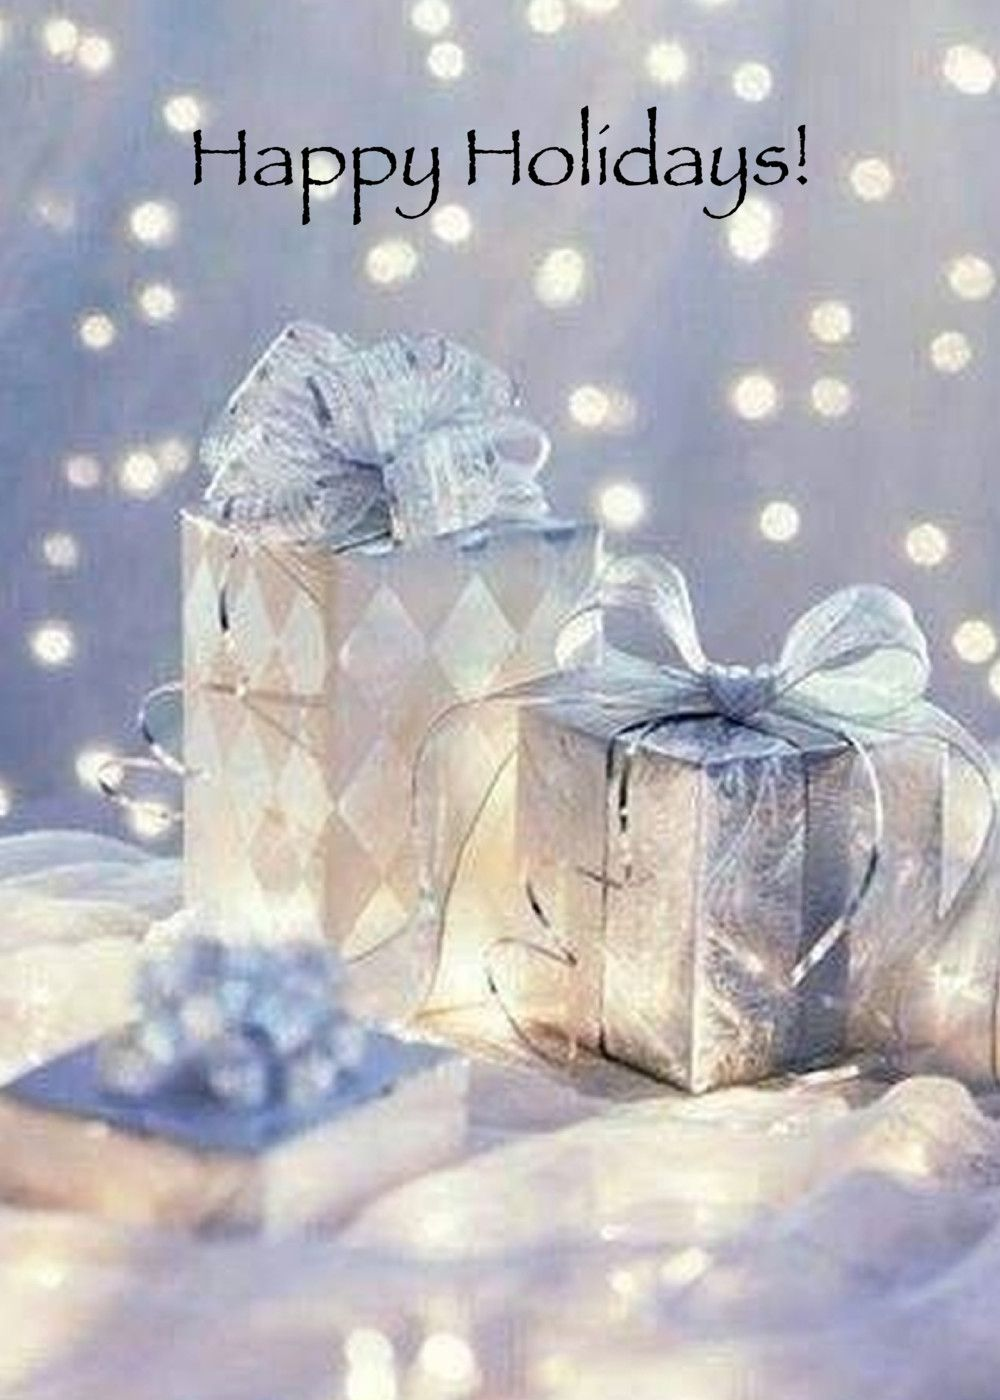 Send online greetings image collections greeting card examples may all of your wishes and dreams come true this holiday season explore online greeting cards kristyandbryce Gallery